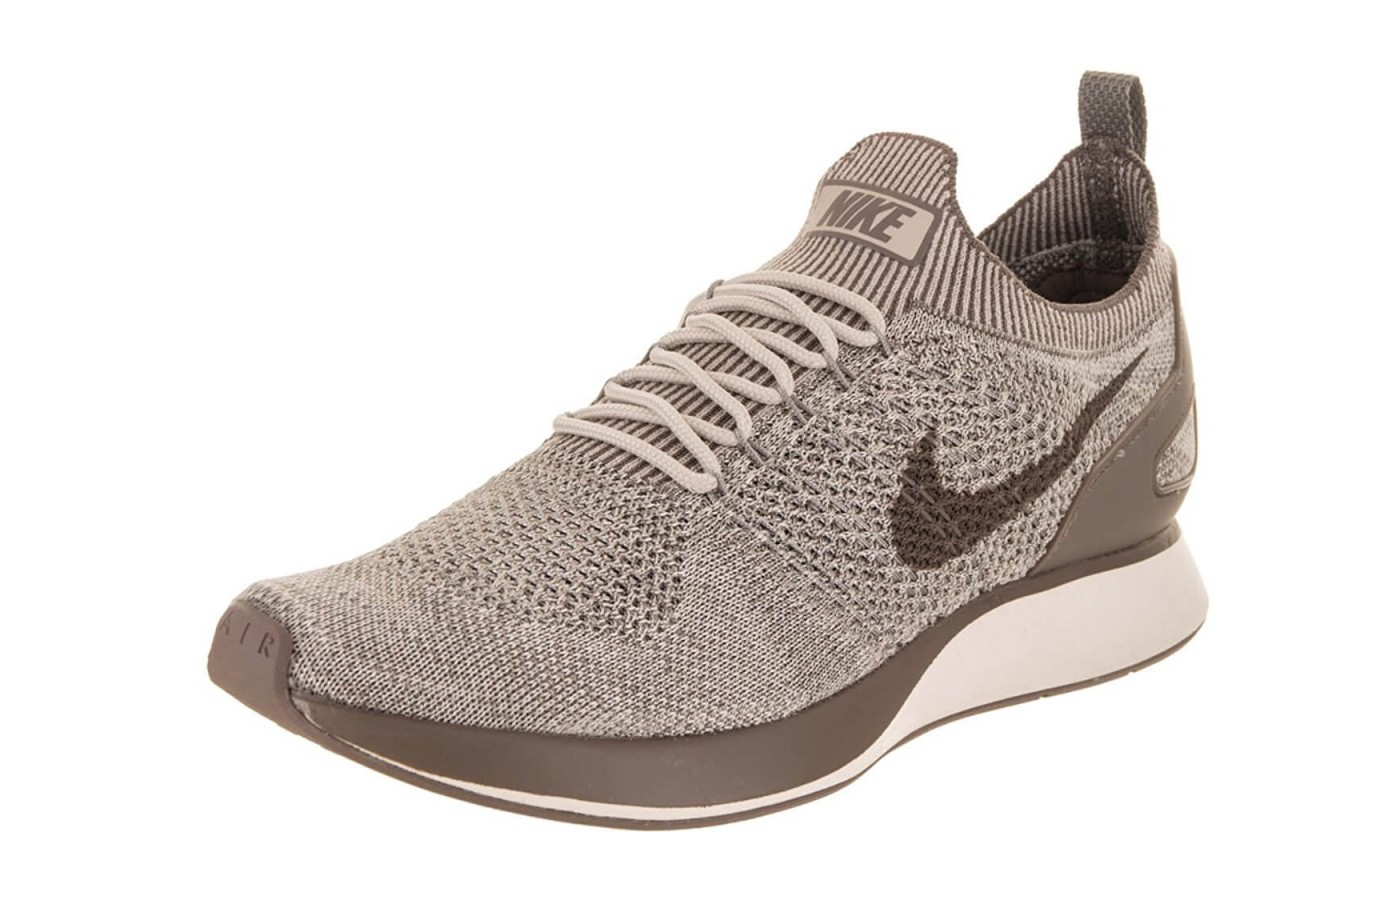 7b82267c3df The Nike Air Zoom Mariah Flyknit Racer features a breathable Flyknit upper  ...